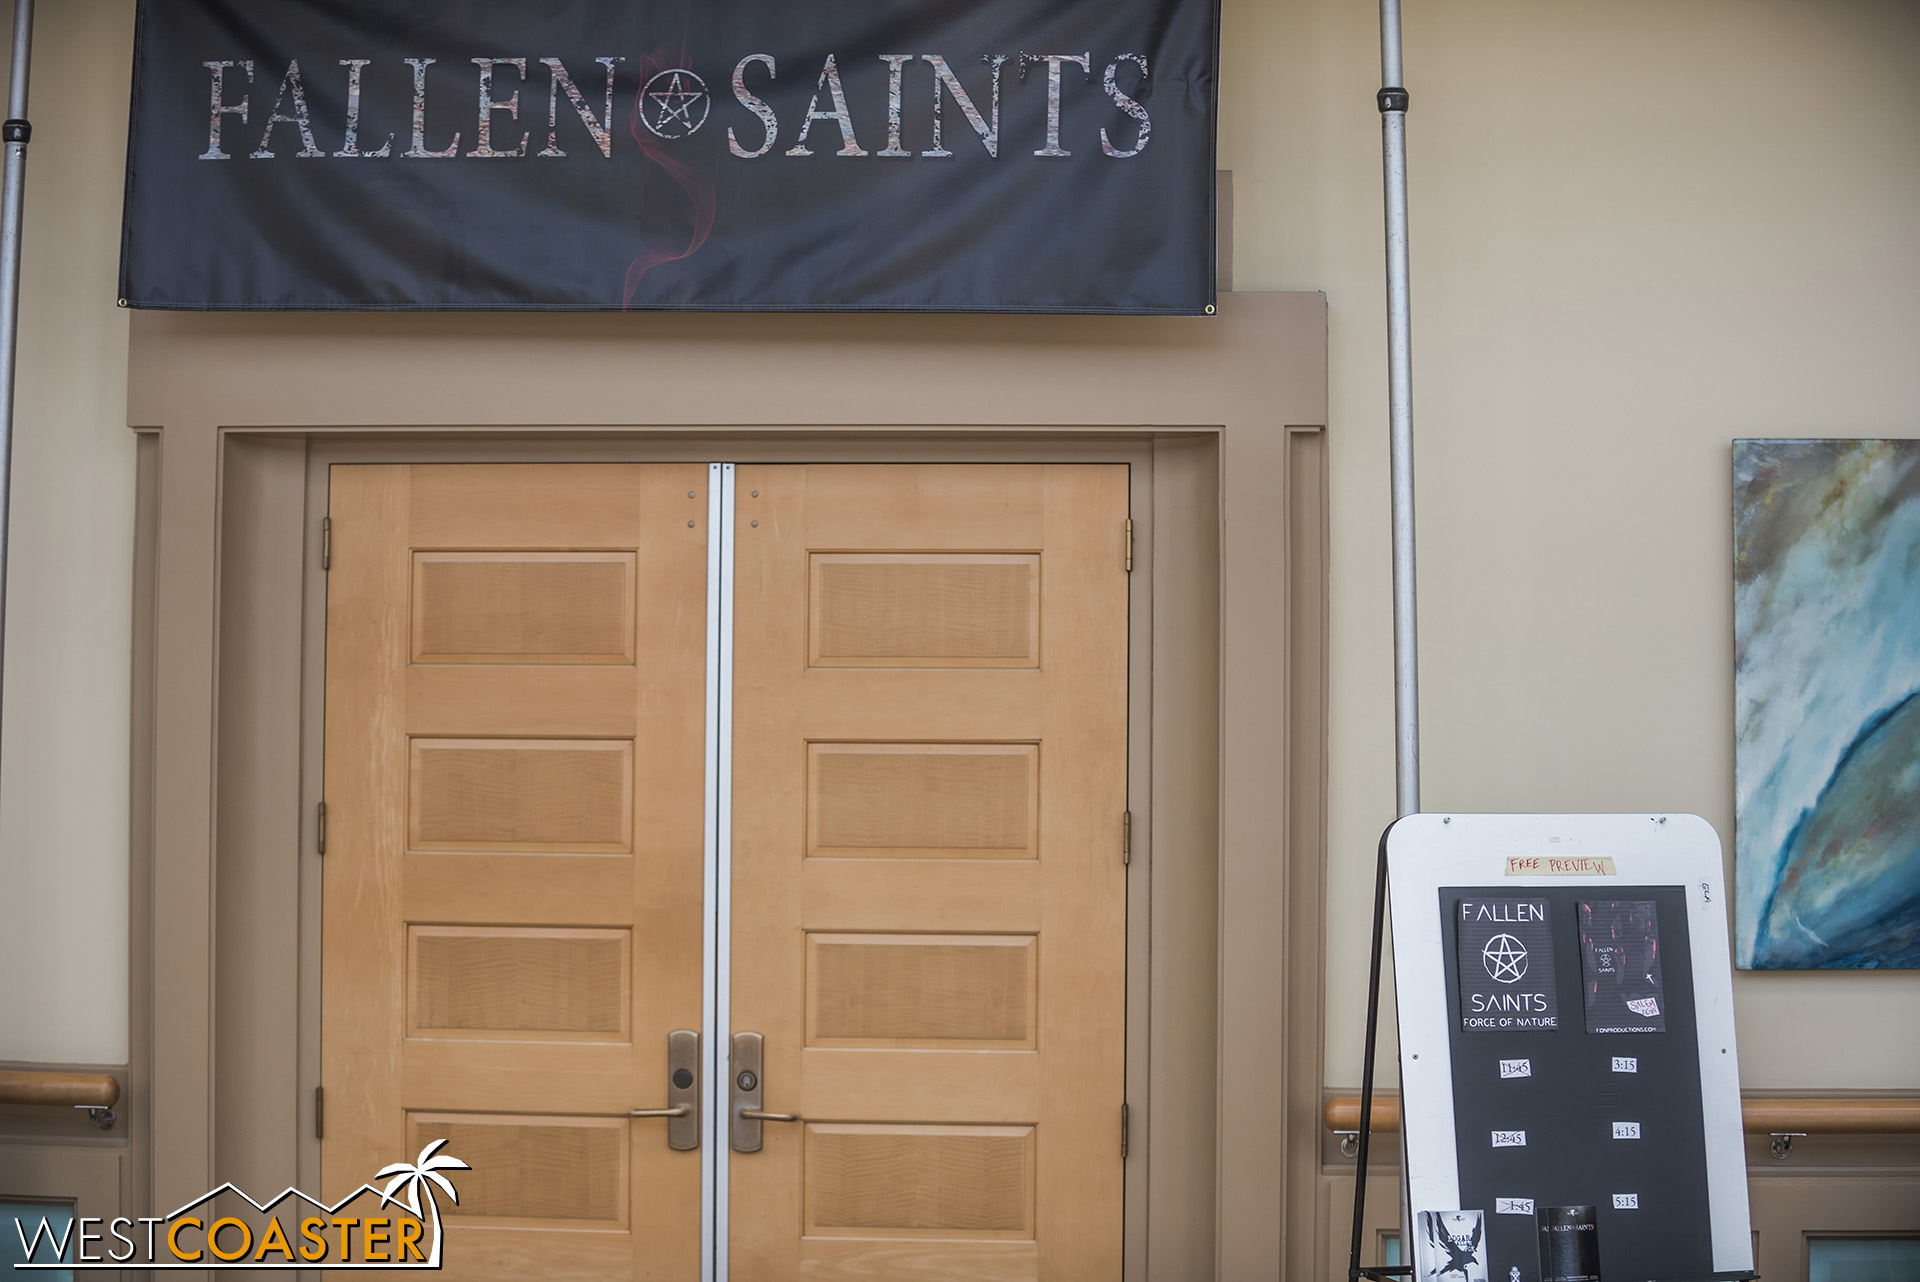 Fallen Saints was just a little down the hall from Urban Death.